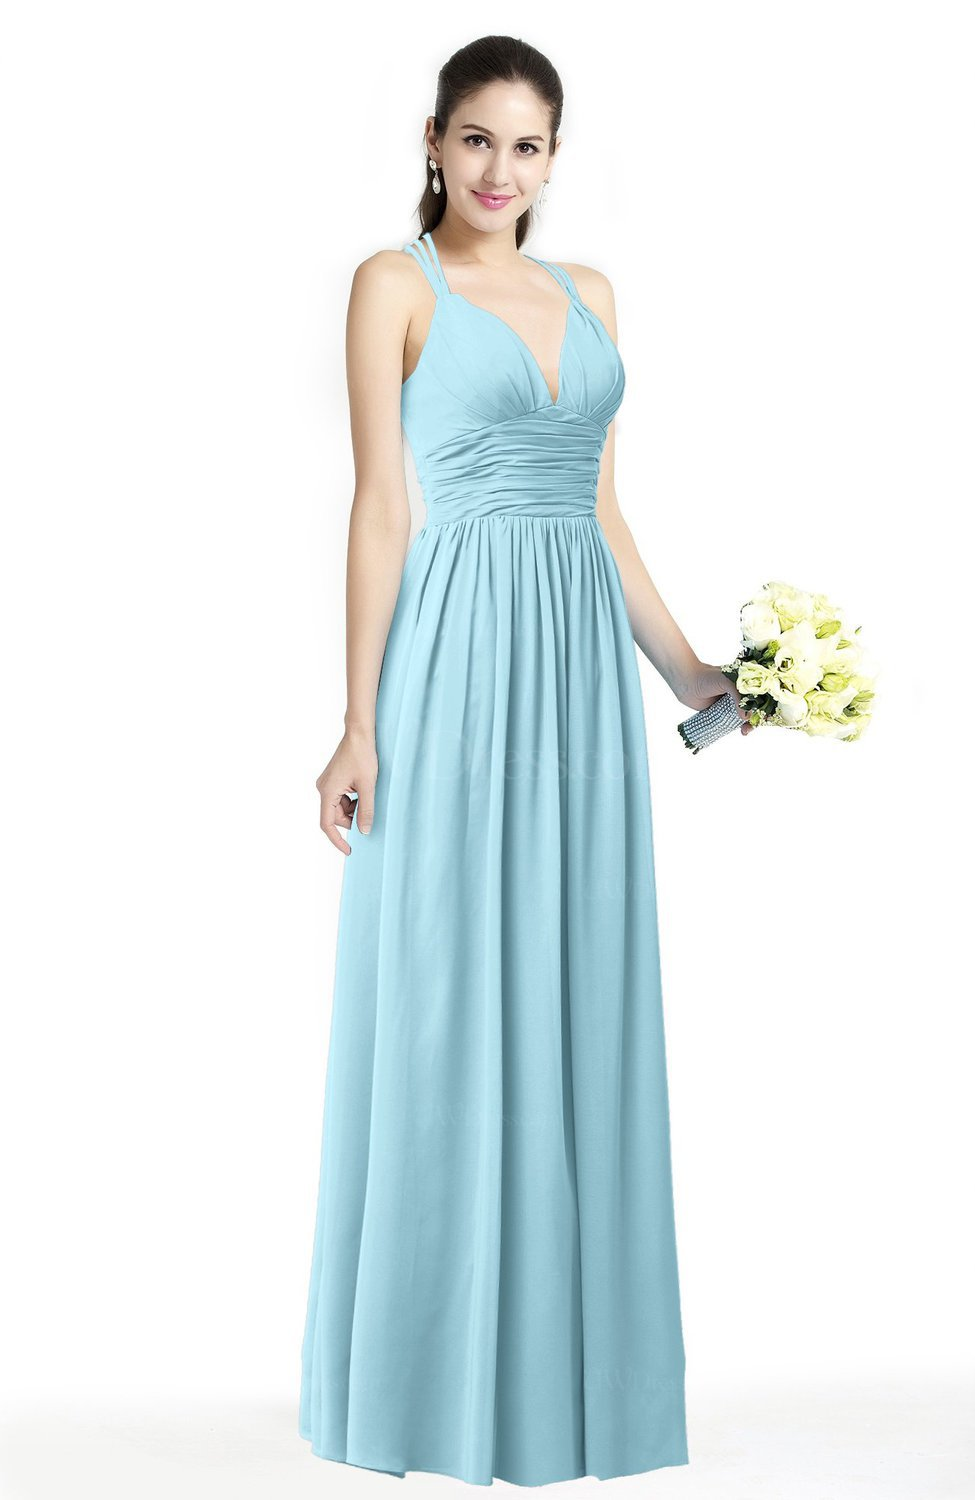 Where To Buy Plus Size Bridesmaid Dresses